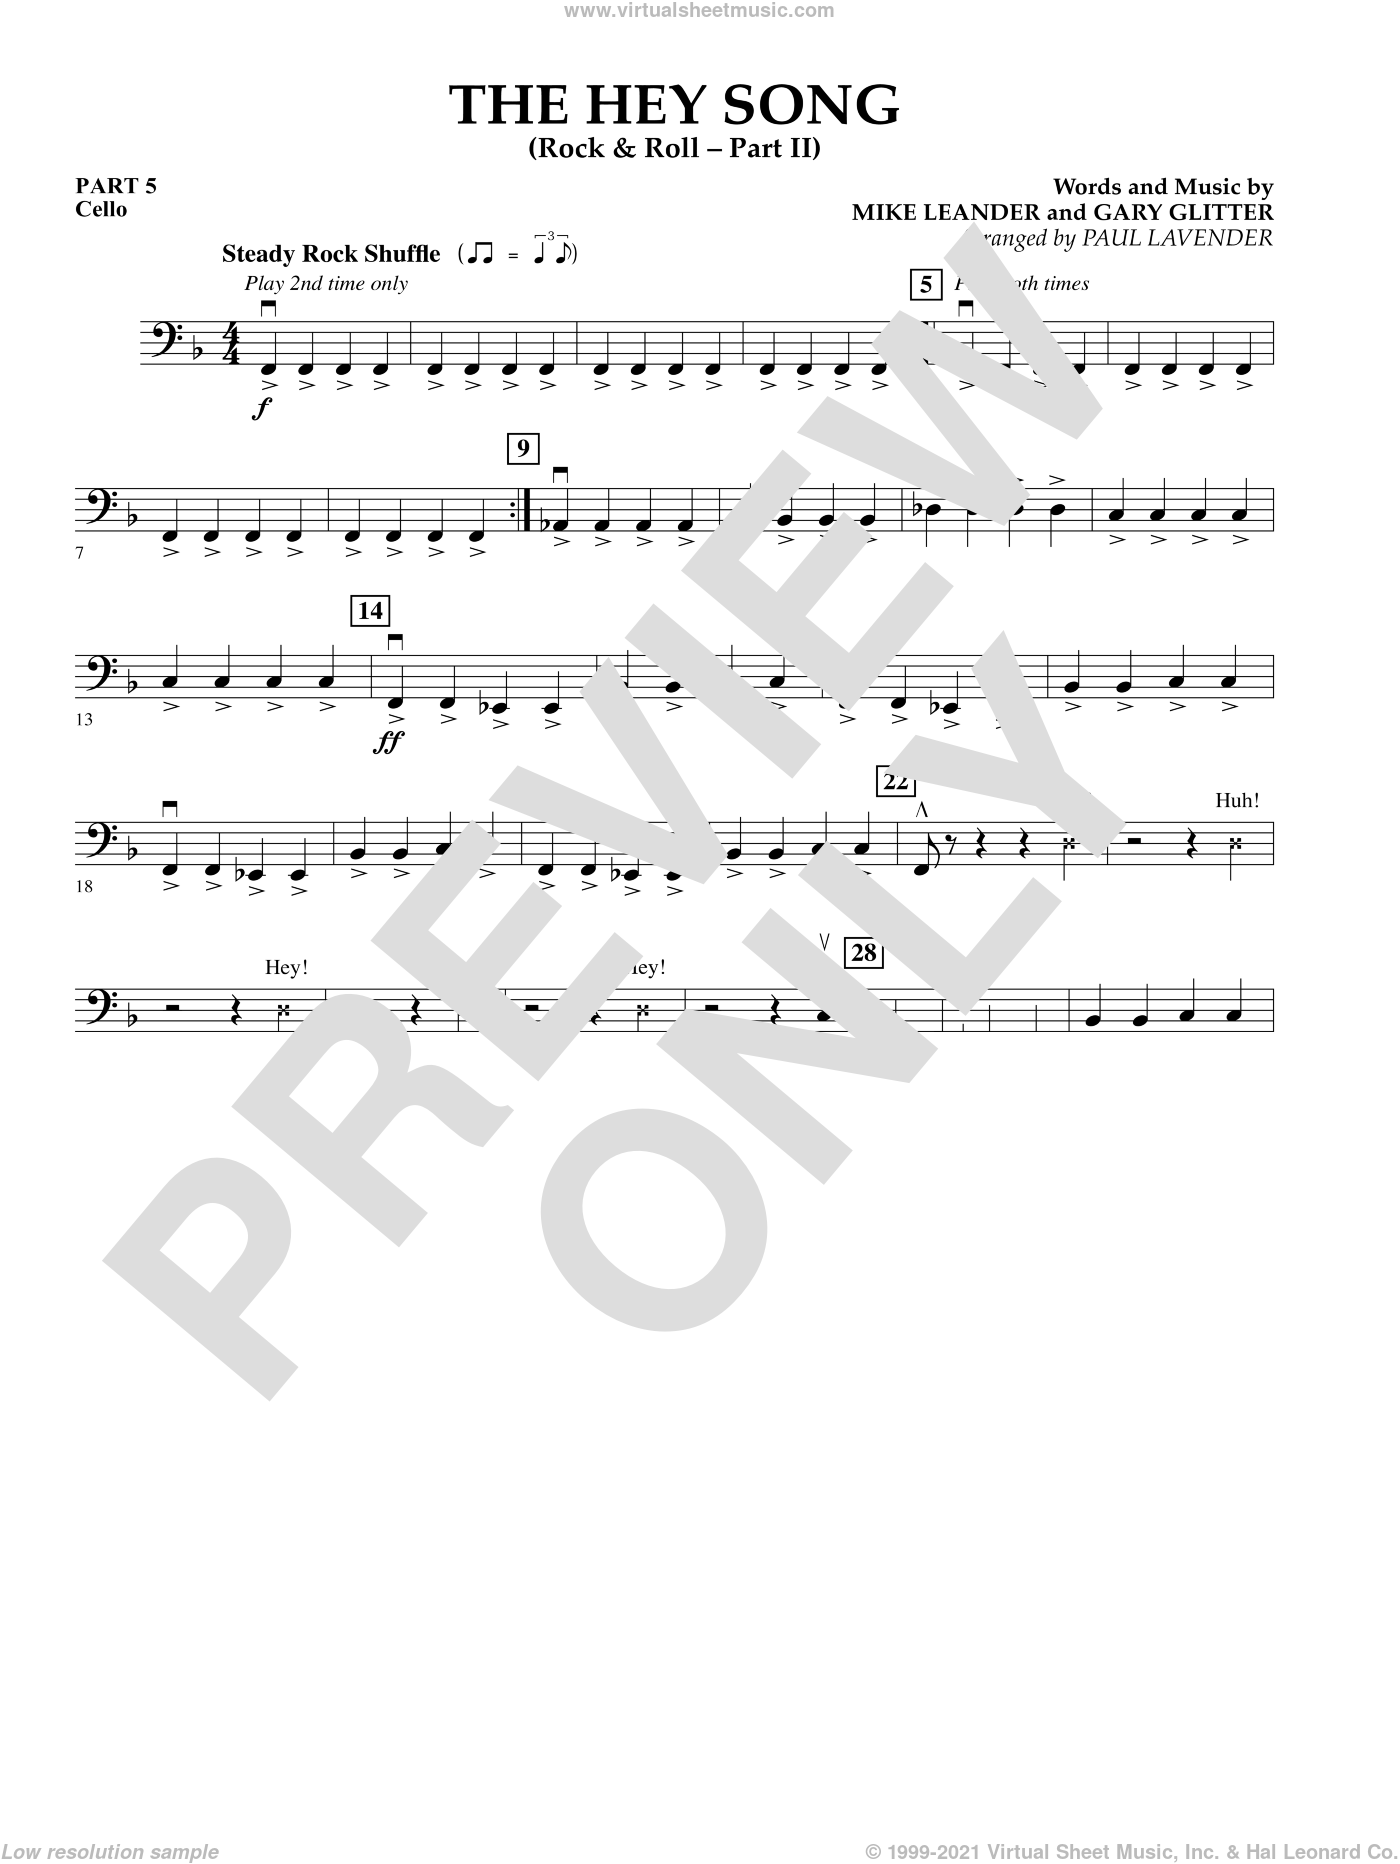 The Hey Song (Rock and Roll Part II) (Flex-Band) sheet music for concert band (pt.5 - cello) by Gary Glitter, Paul Lavender and Mike Leander, intermediate skill level